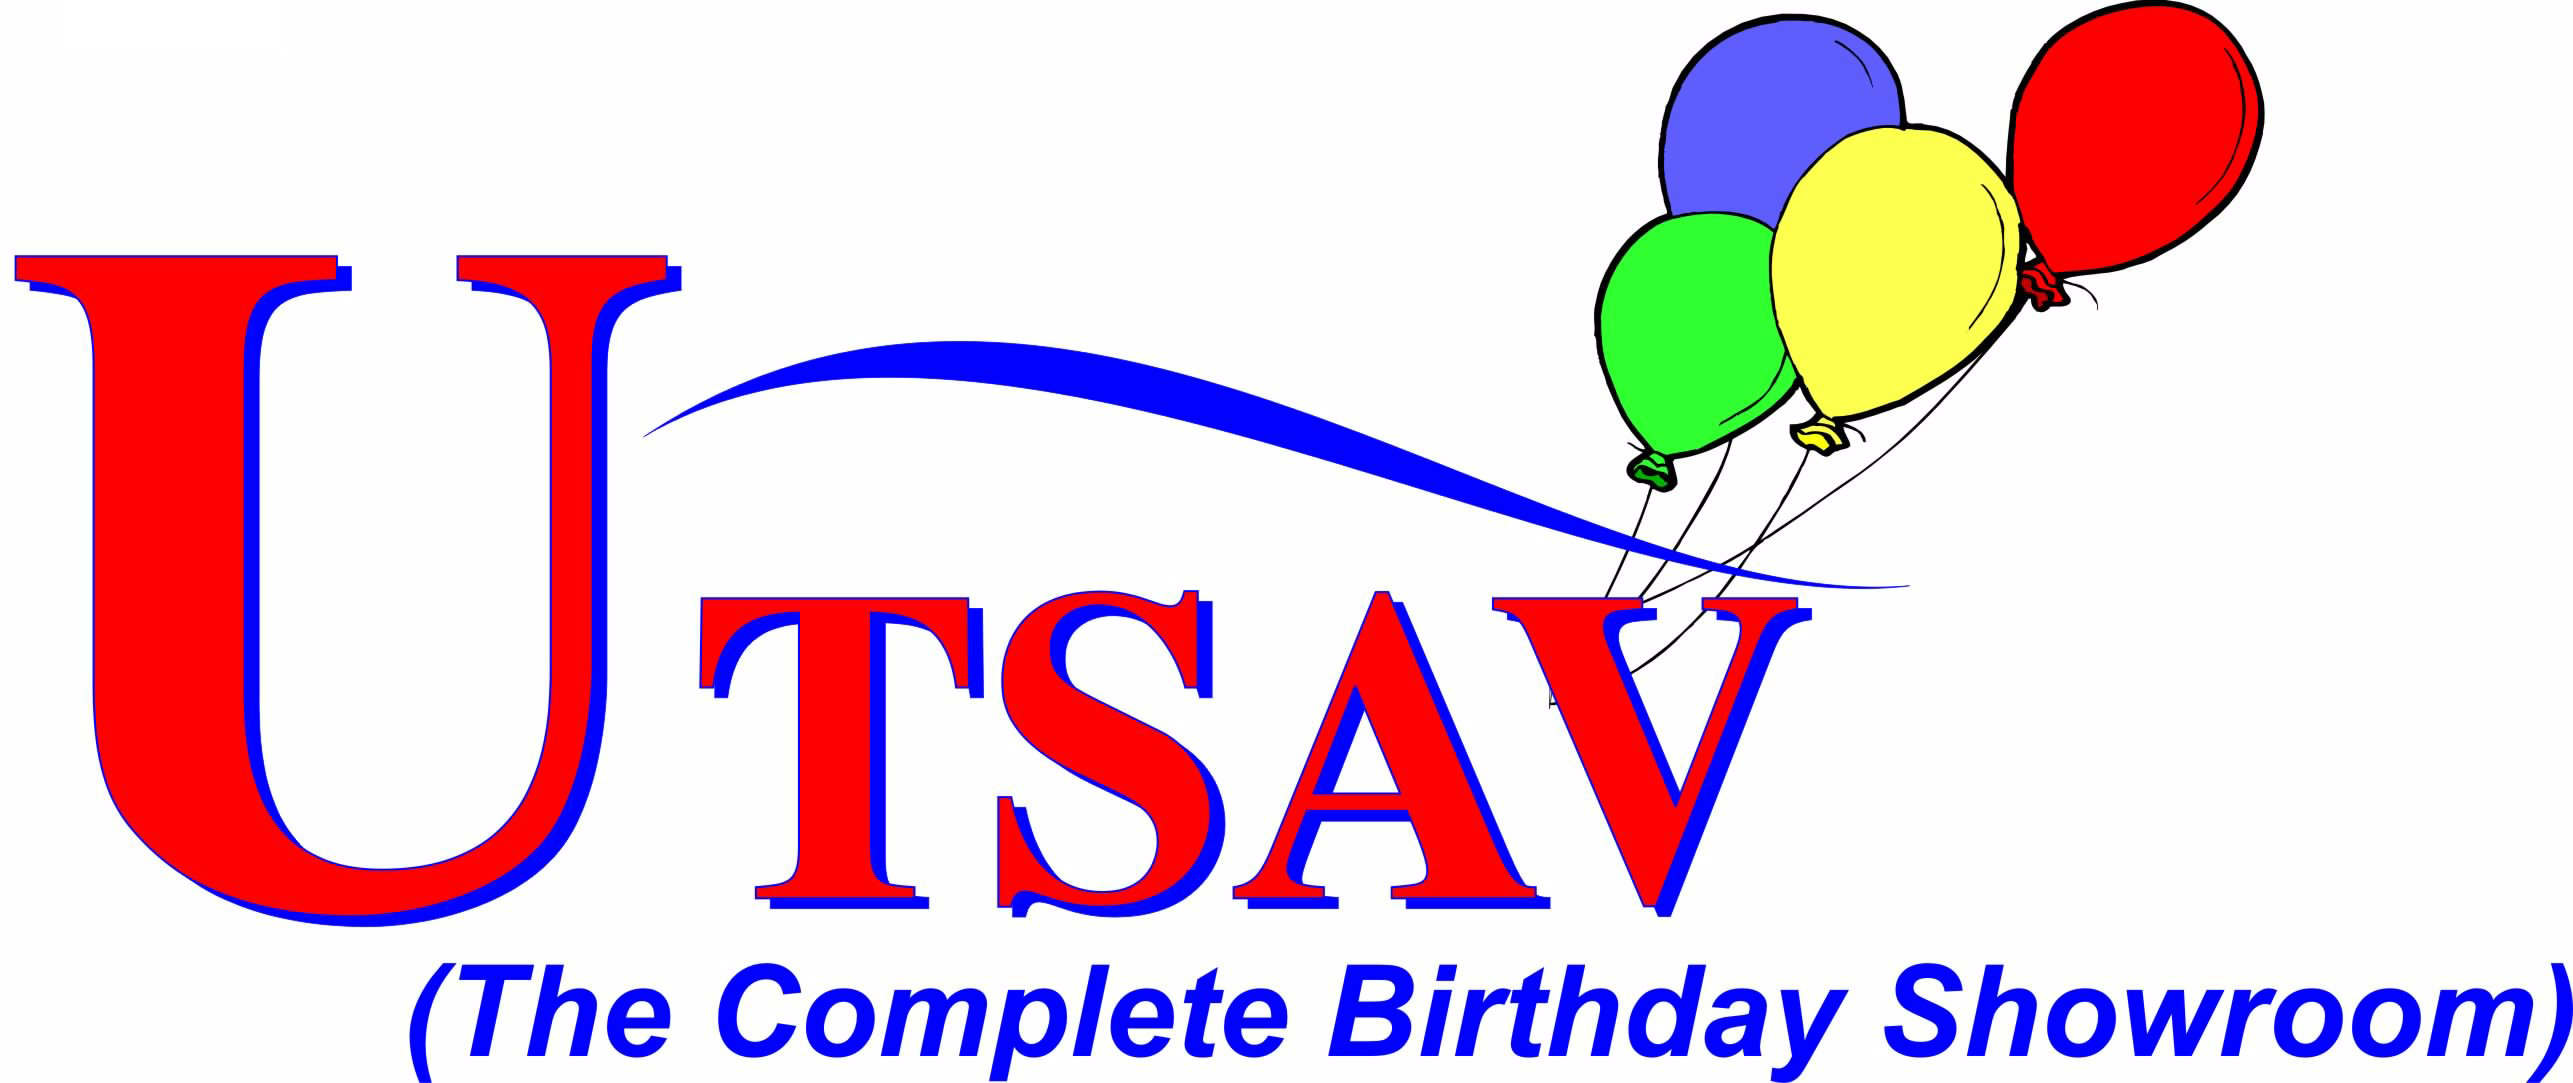 Utsav Birthday Showroom